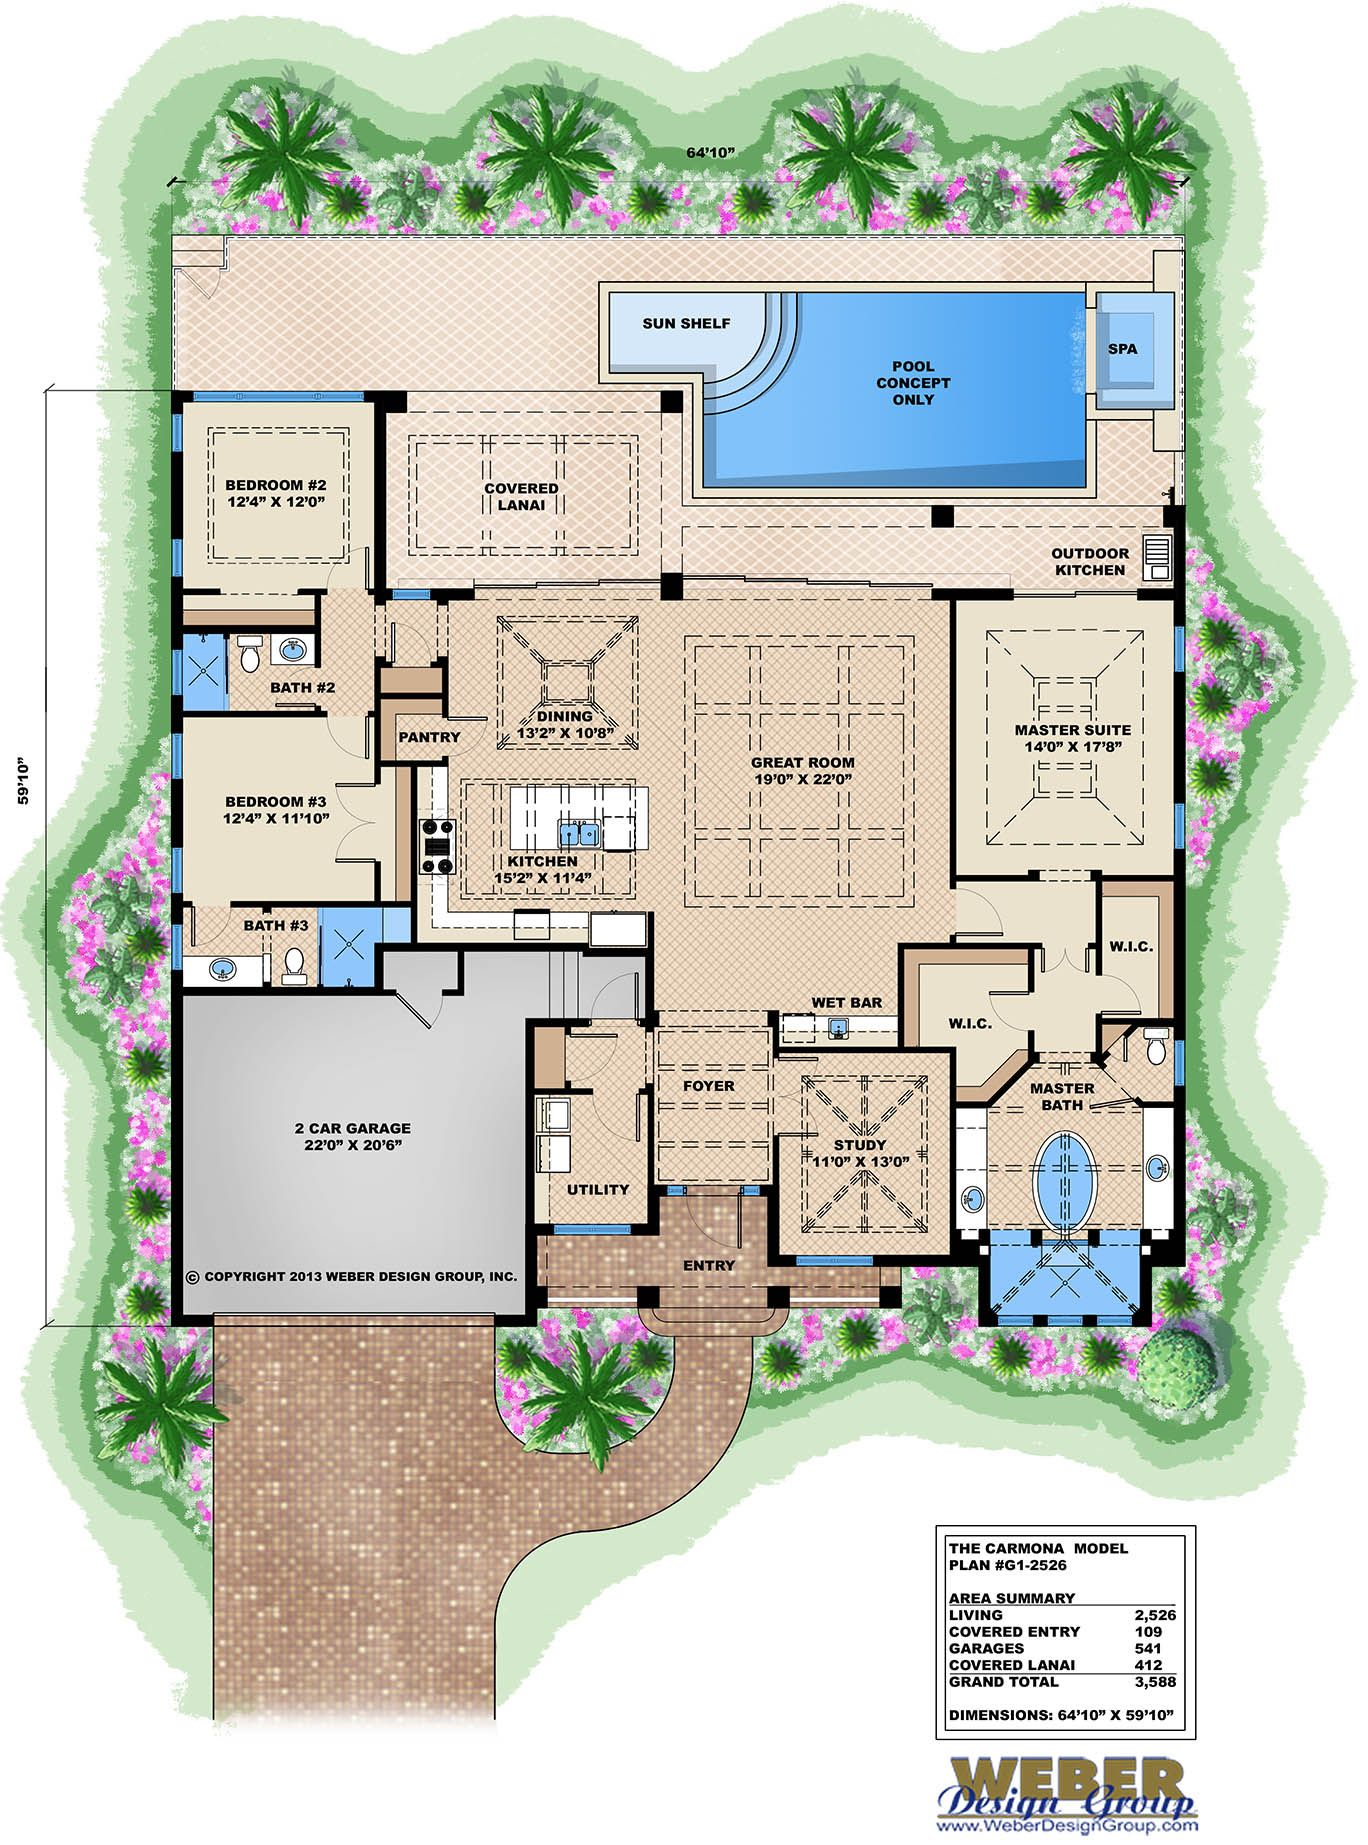 West Indies House Plan Contemporary Island Style Beach Home Plan Florida House Plans Beach House Plans House Plans One Story